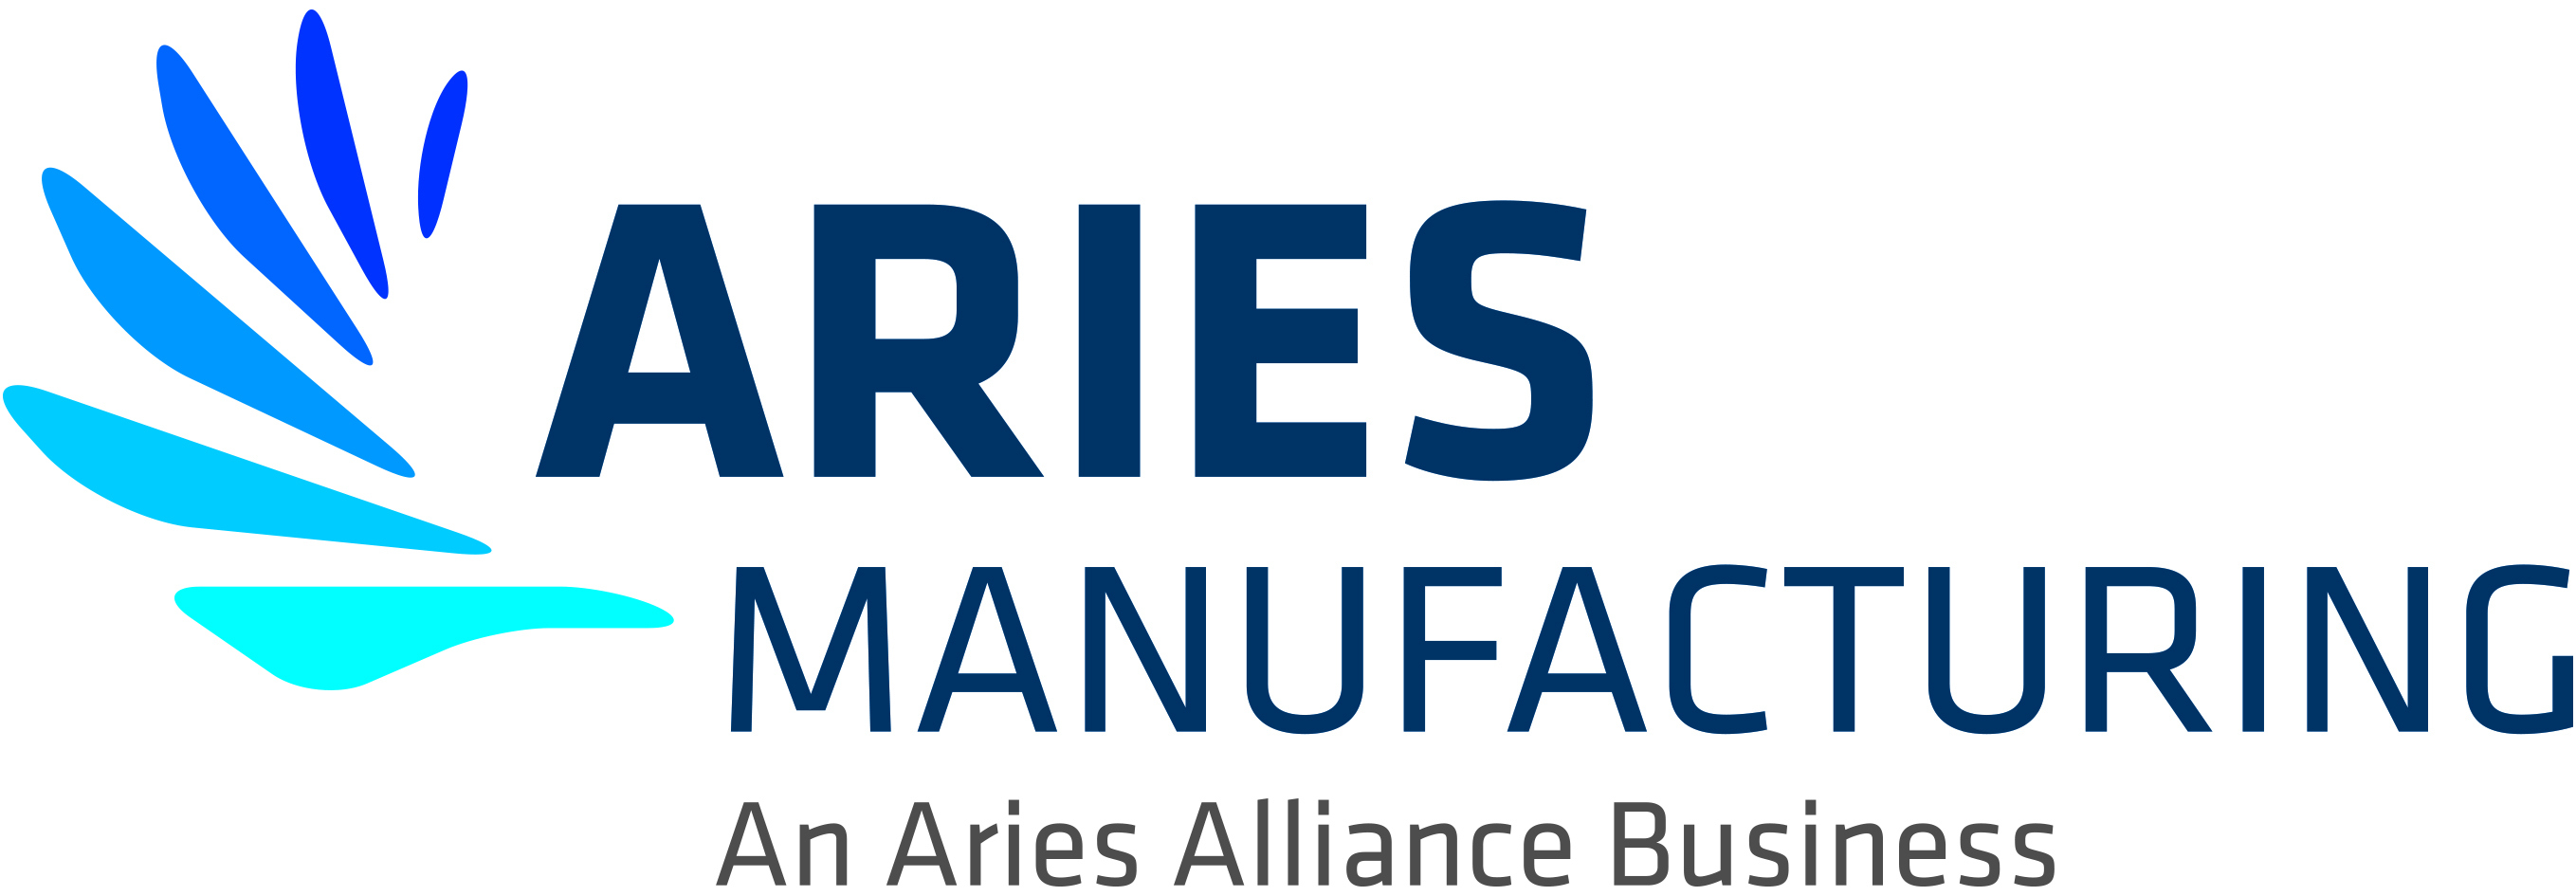 Aries Manufacturing Business